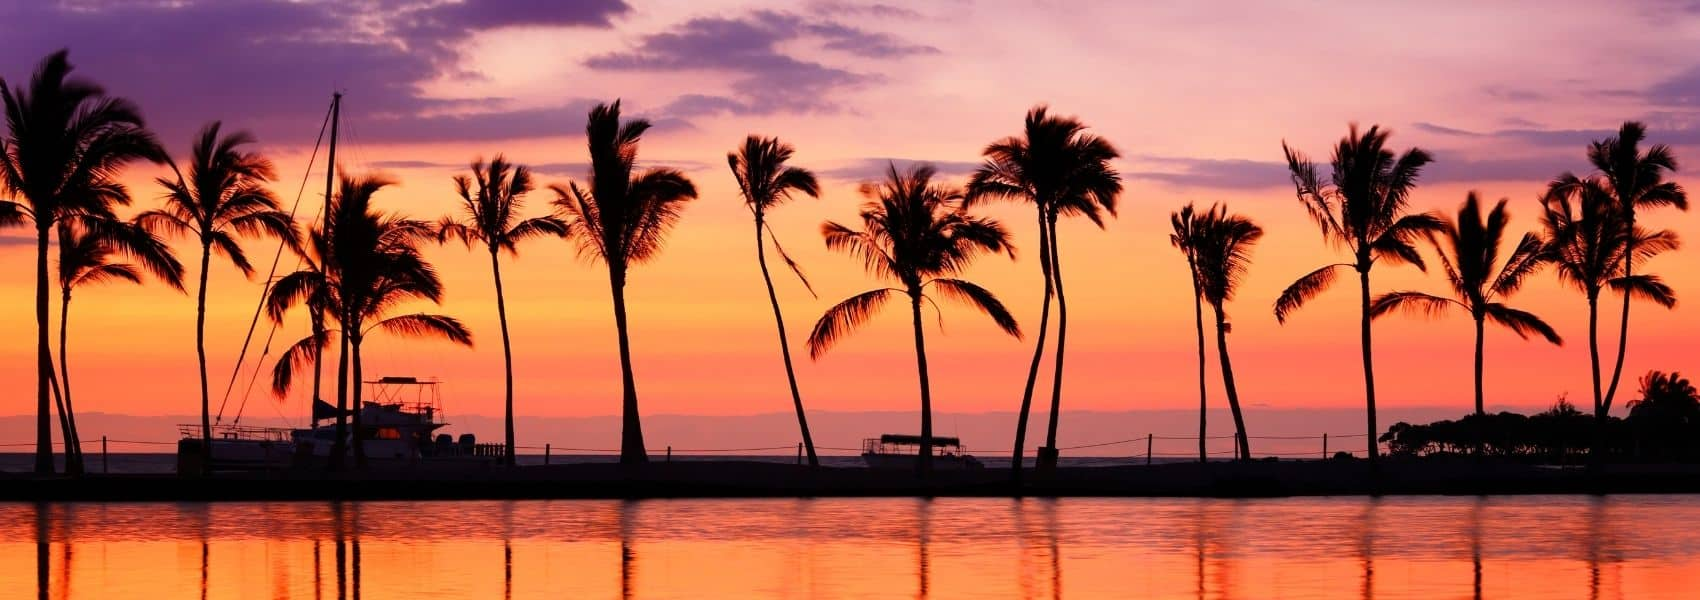 Silhouettes of palm trees with water in the foreground and a purple and red sunset in the background.